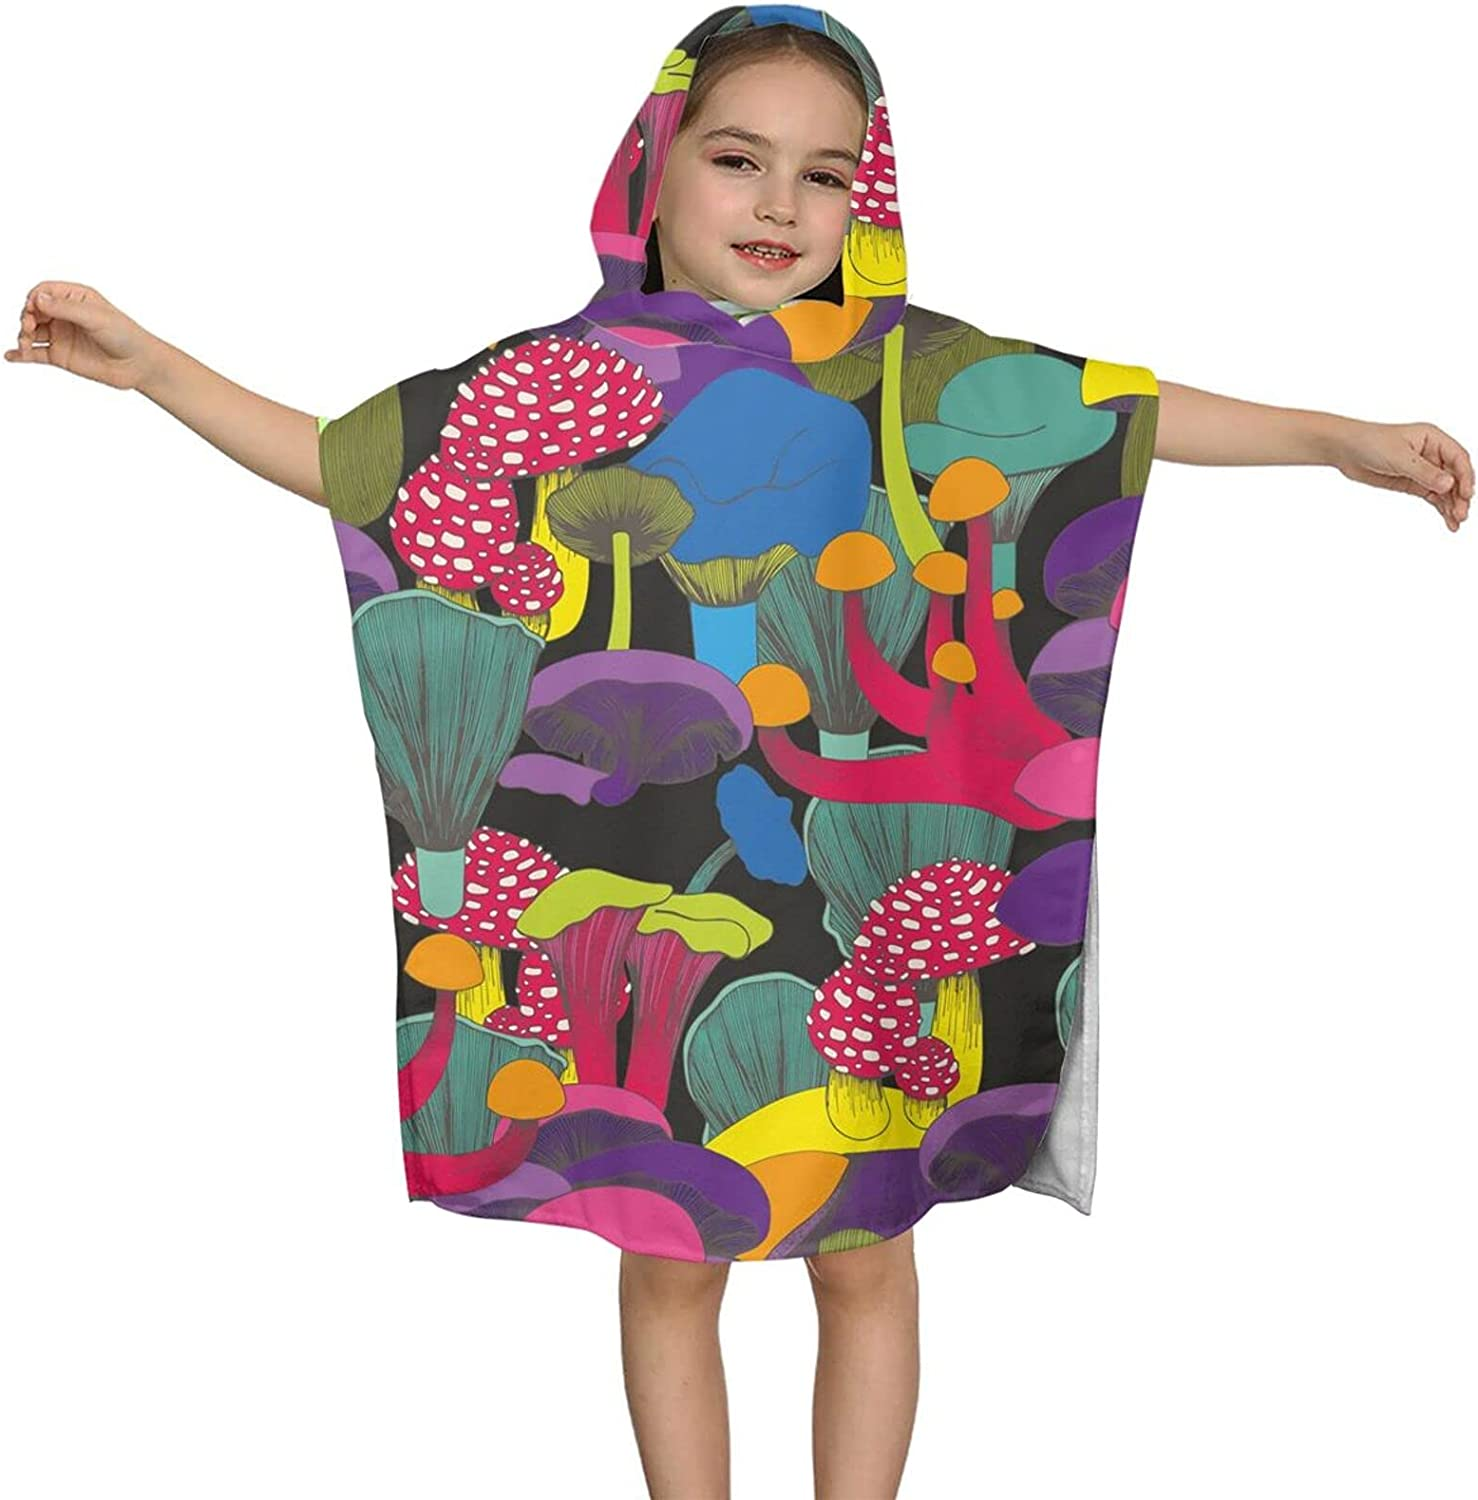 Hooded 2021 autumn and winter new Bath Towel Colorful Soft Kids Baltimore Mall Wrap Mushroom